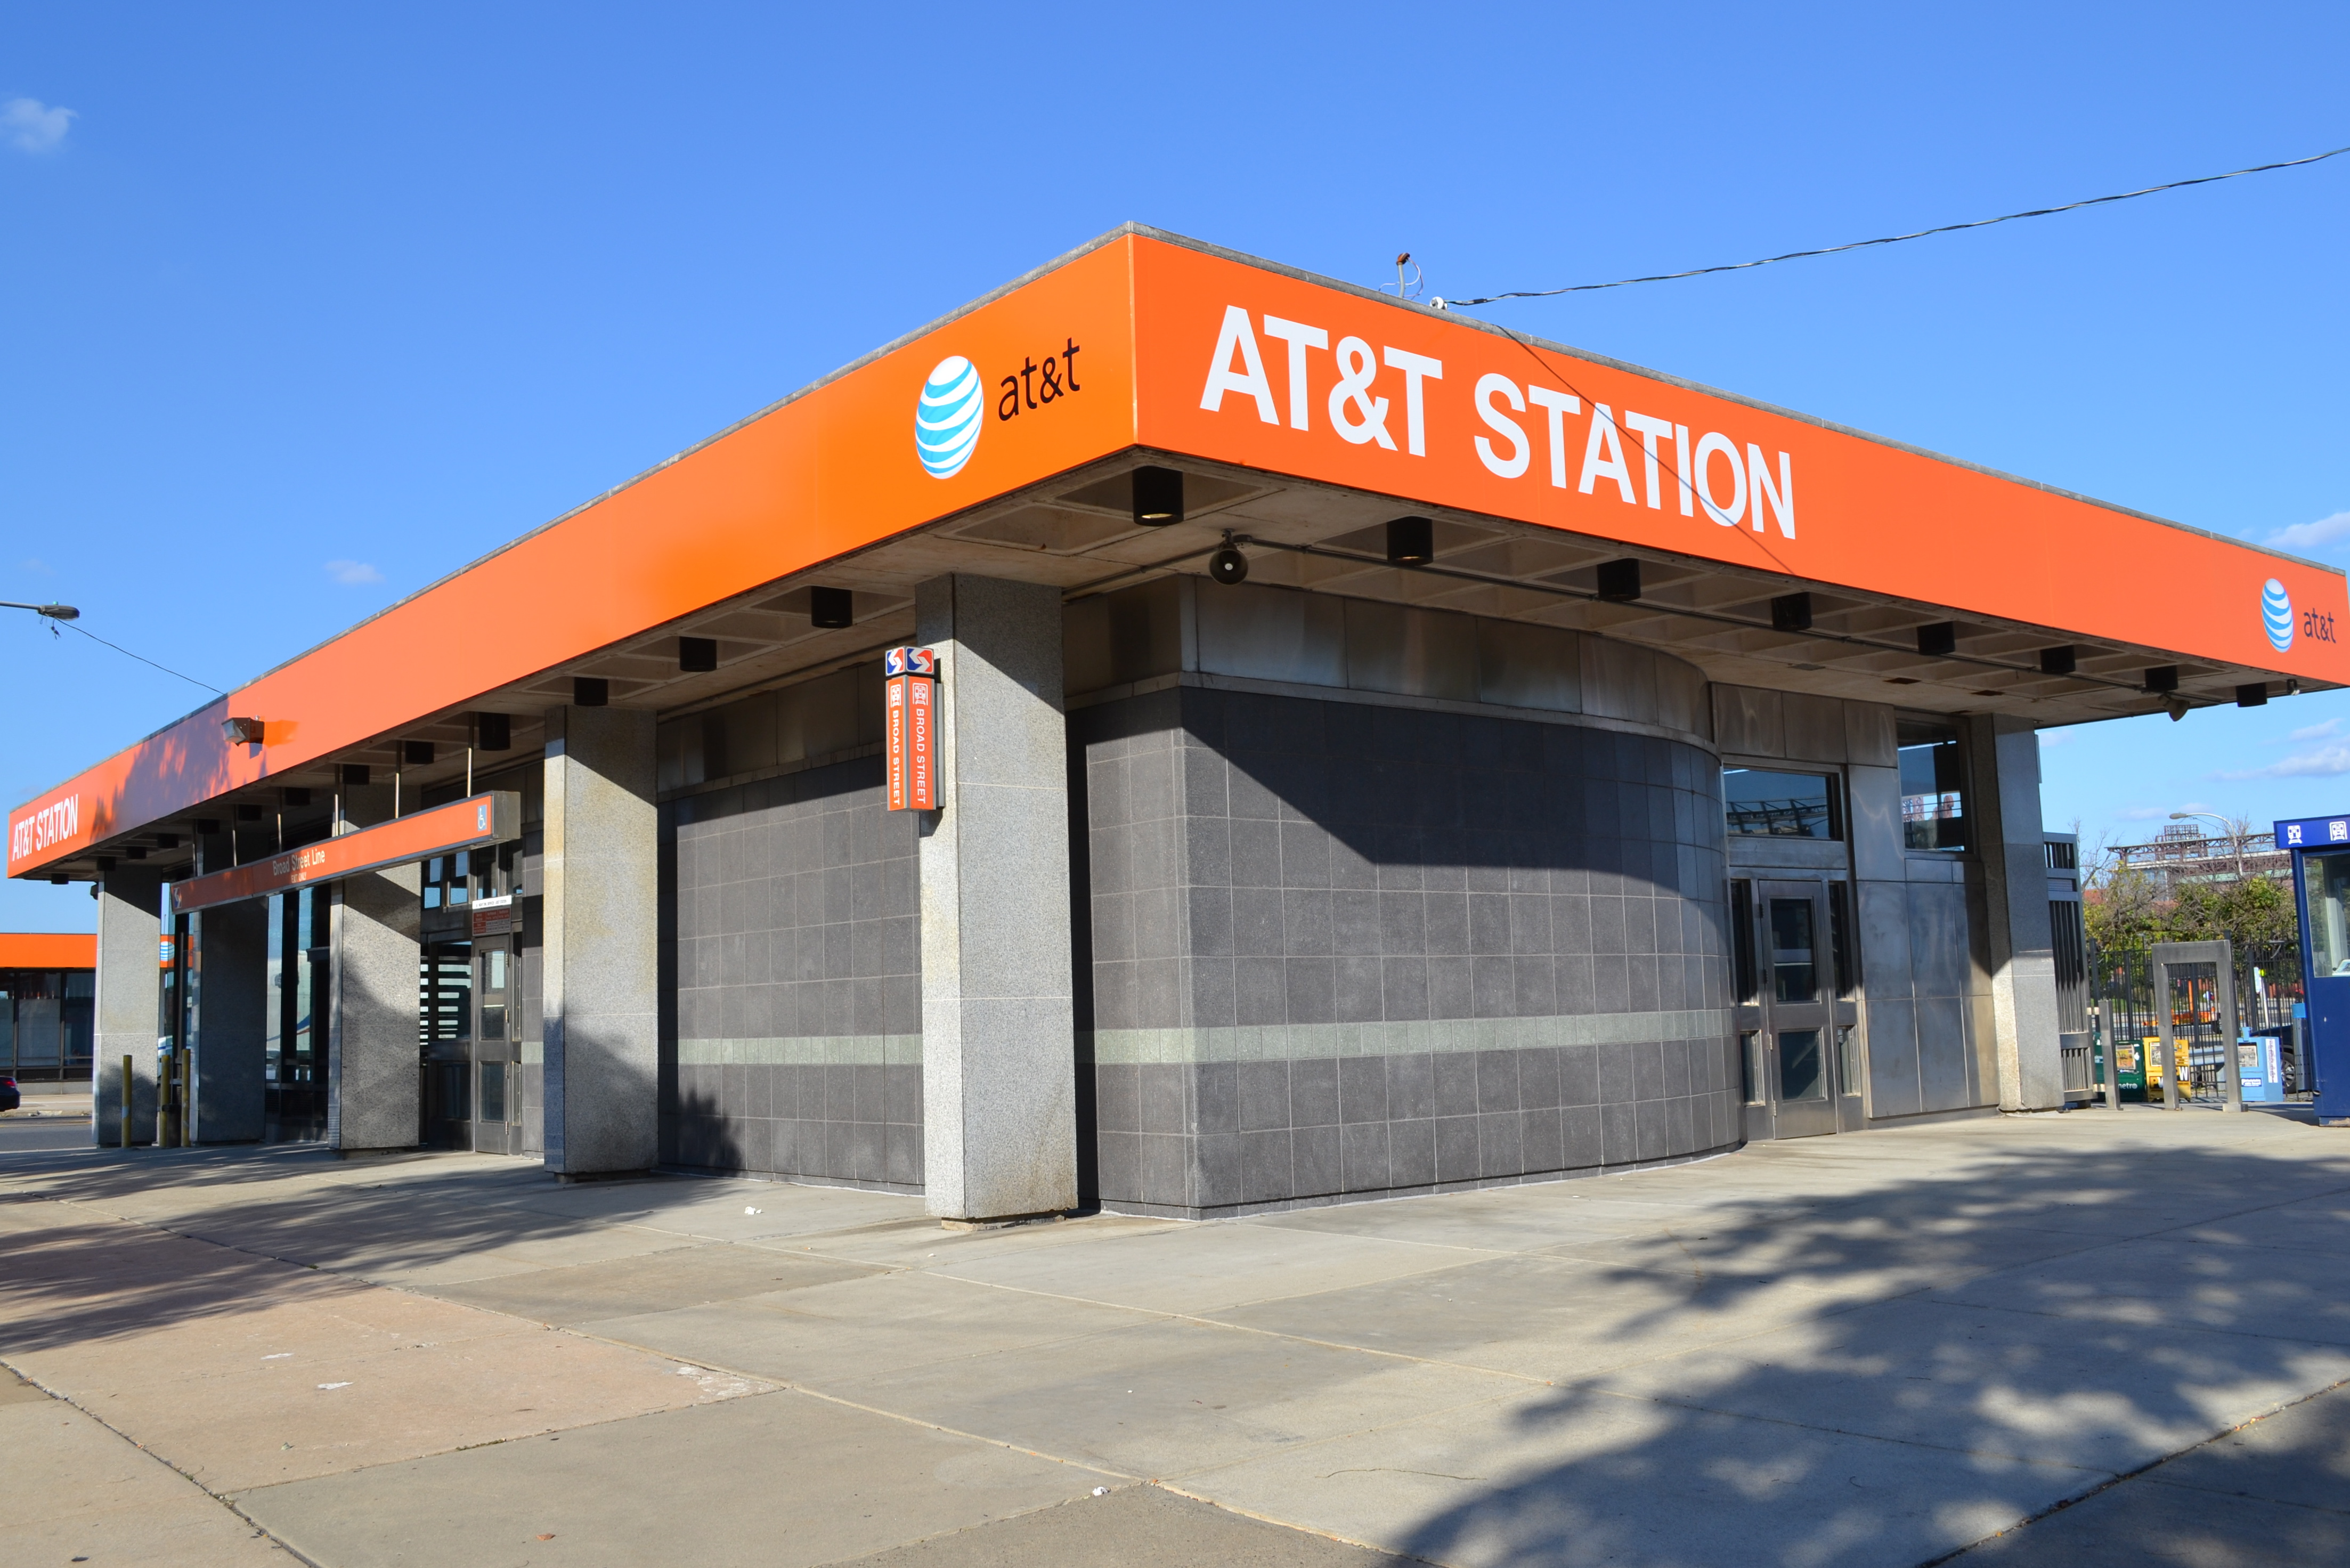 Panelists discussed extending the Broad Street Line past the AT&T station